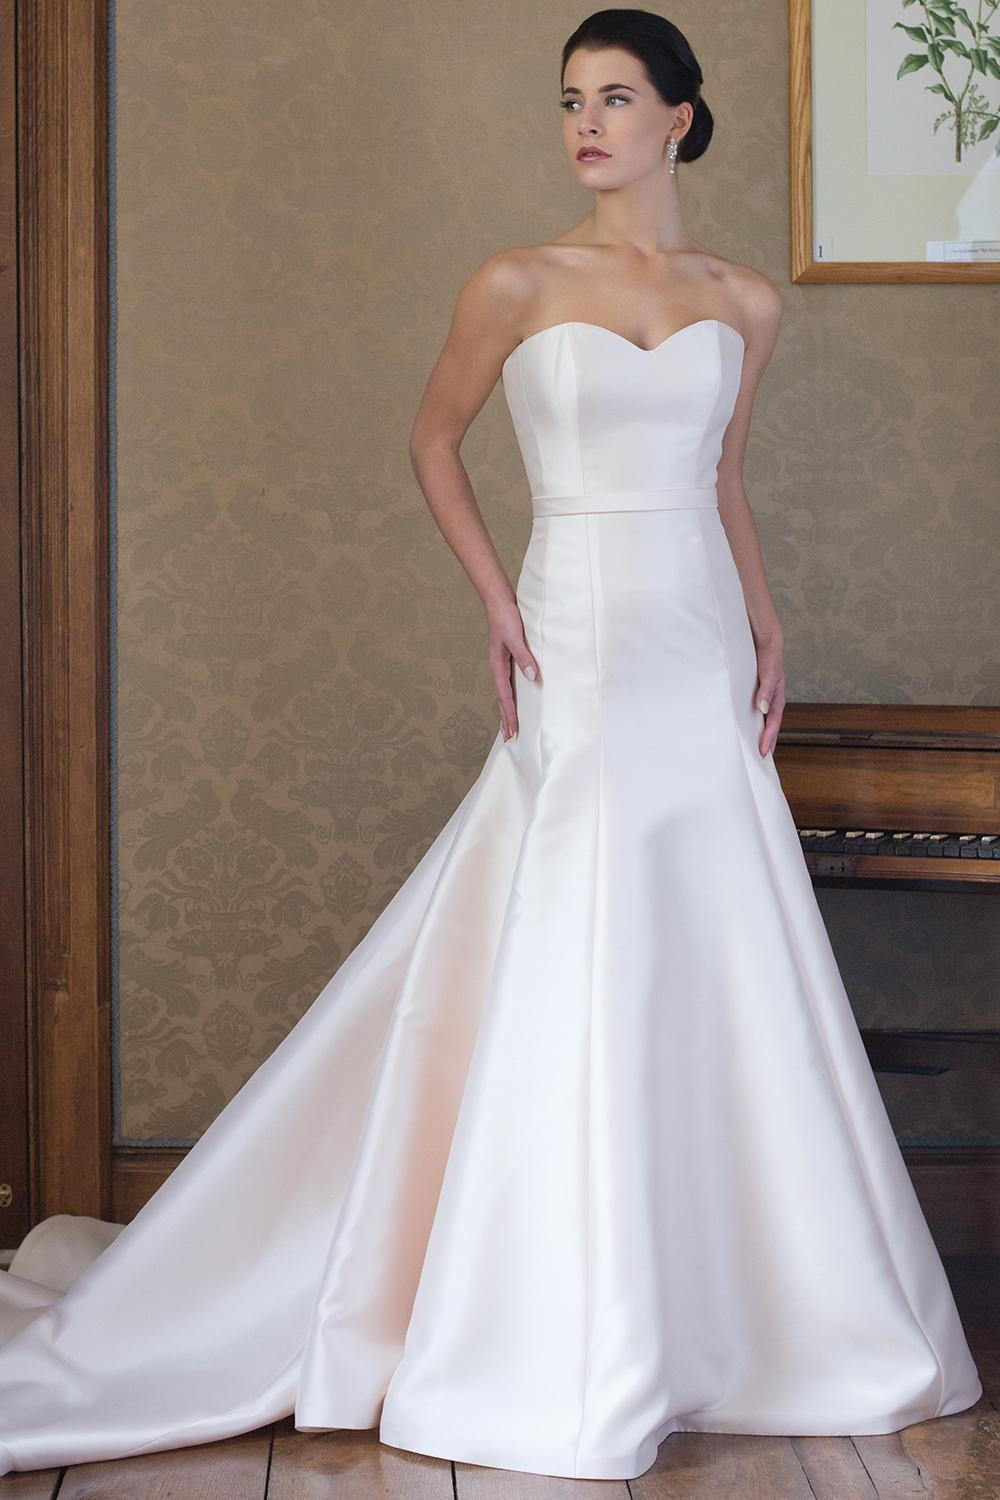 Strapless Sweetheart Neckline Fit And Flare Wedding Dress ...